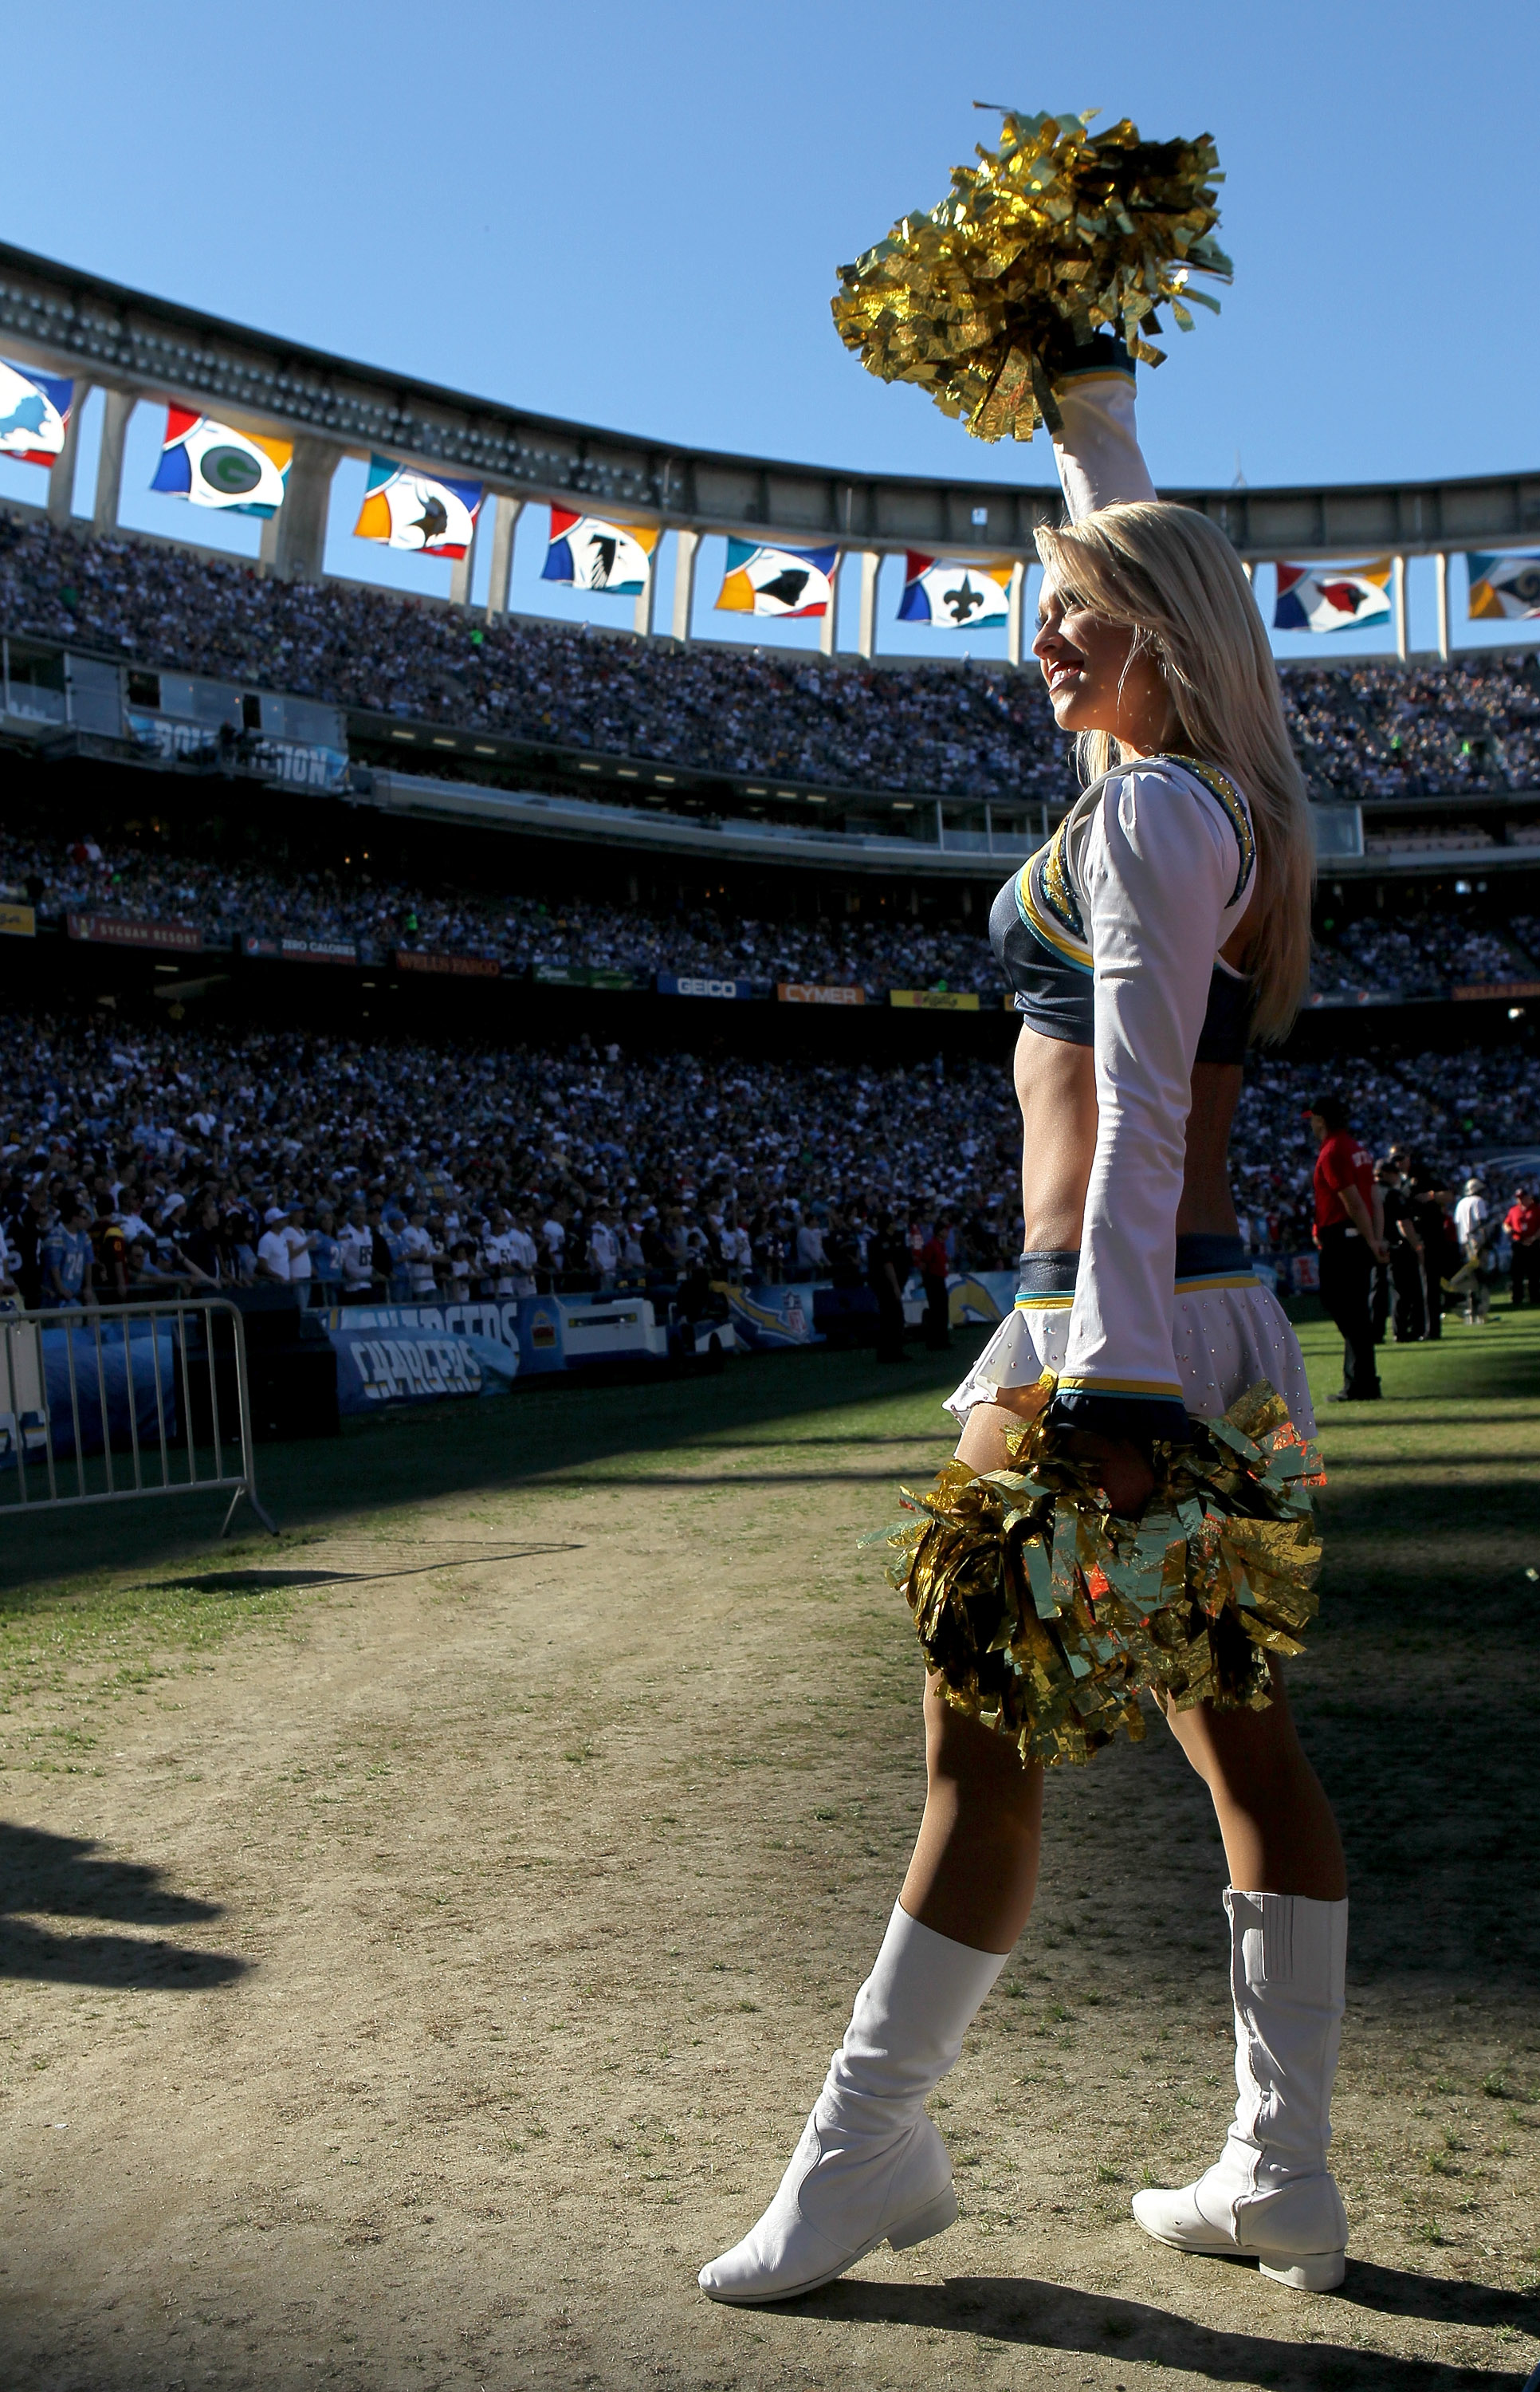 SAN DIEGO - DECEMBER 12:  A Charger Girl performs during the game between the San Diego Chargers and the Kansas City Chiefs at Qualcomm Stadium on December 12, 2010 in San Diego, California.  the Chargers won 31-0.  (Photo by Stephen Dunn/Getty Images)